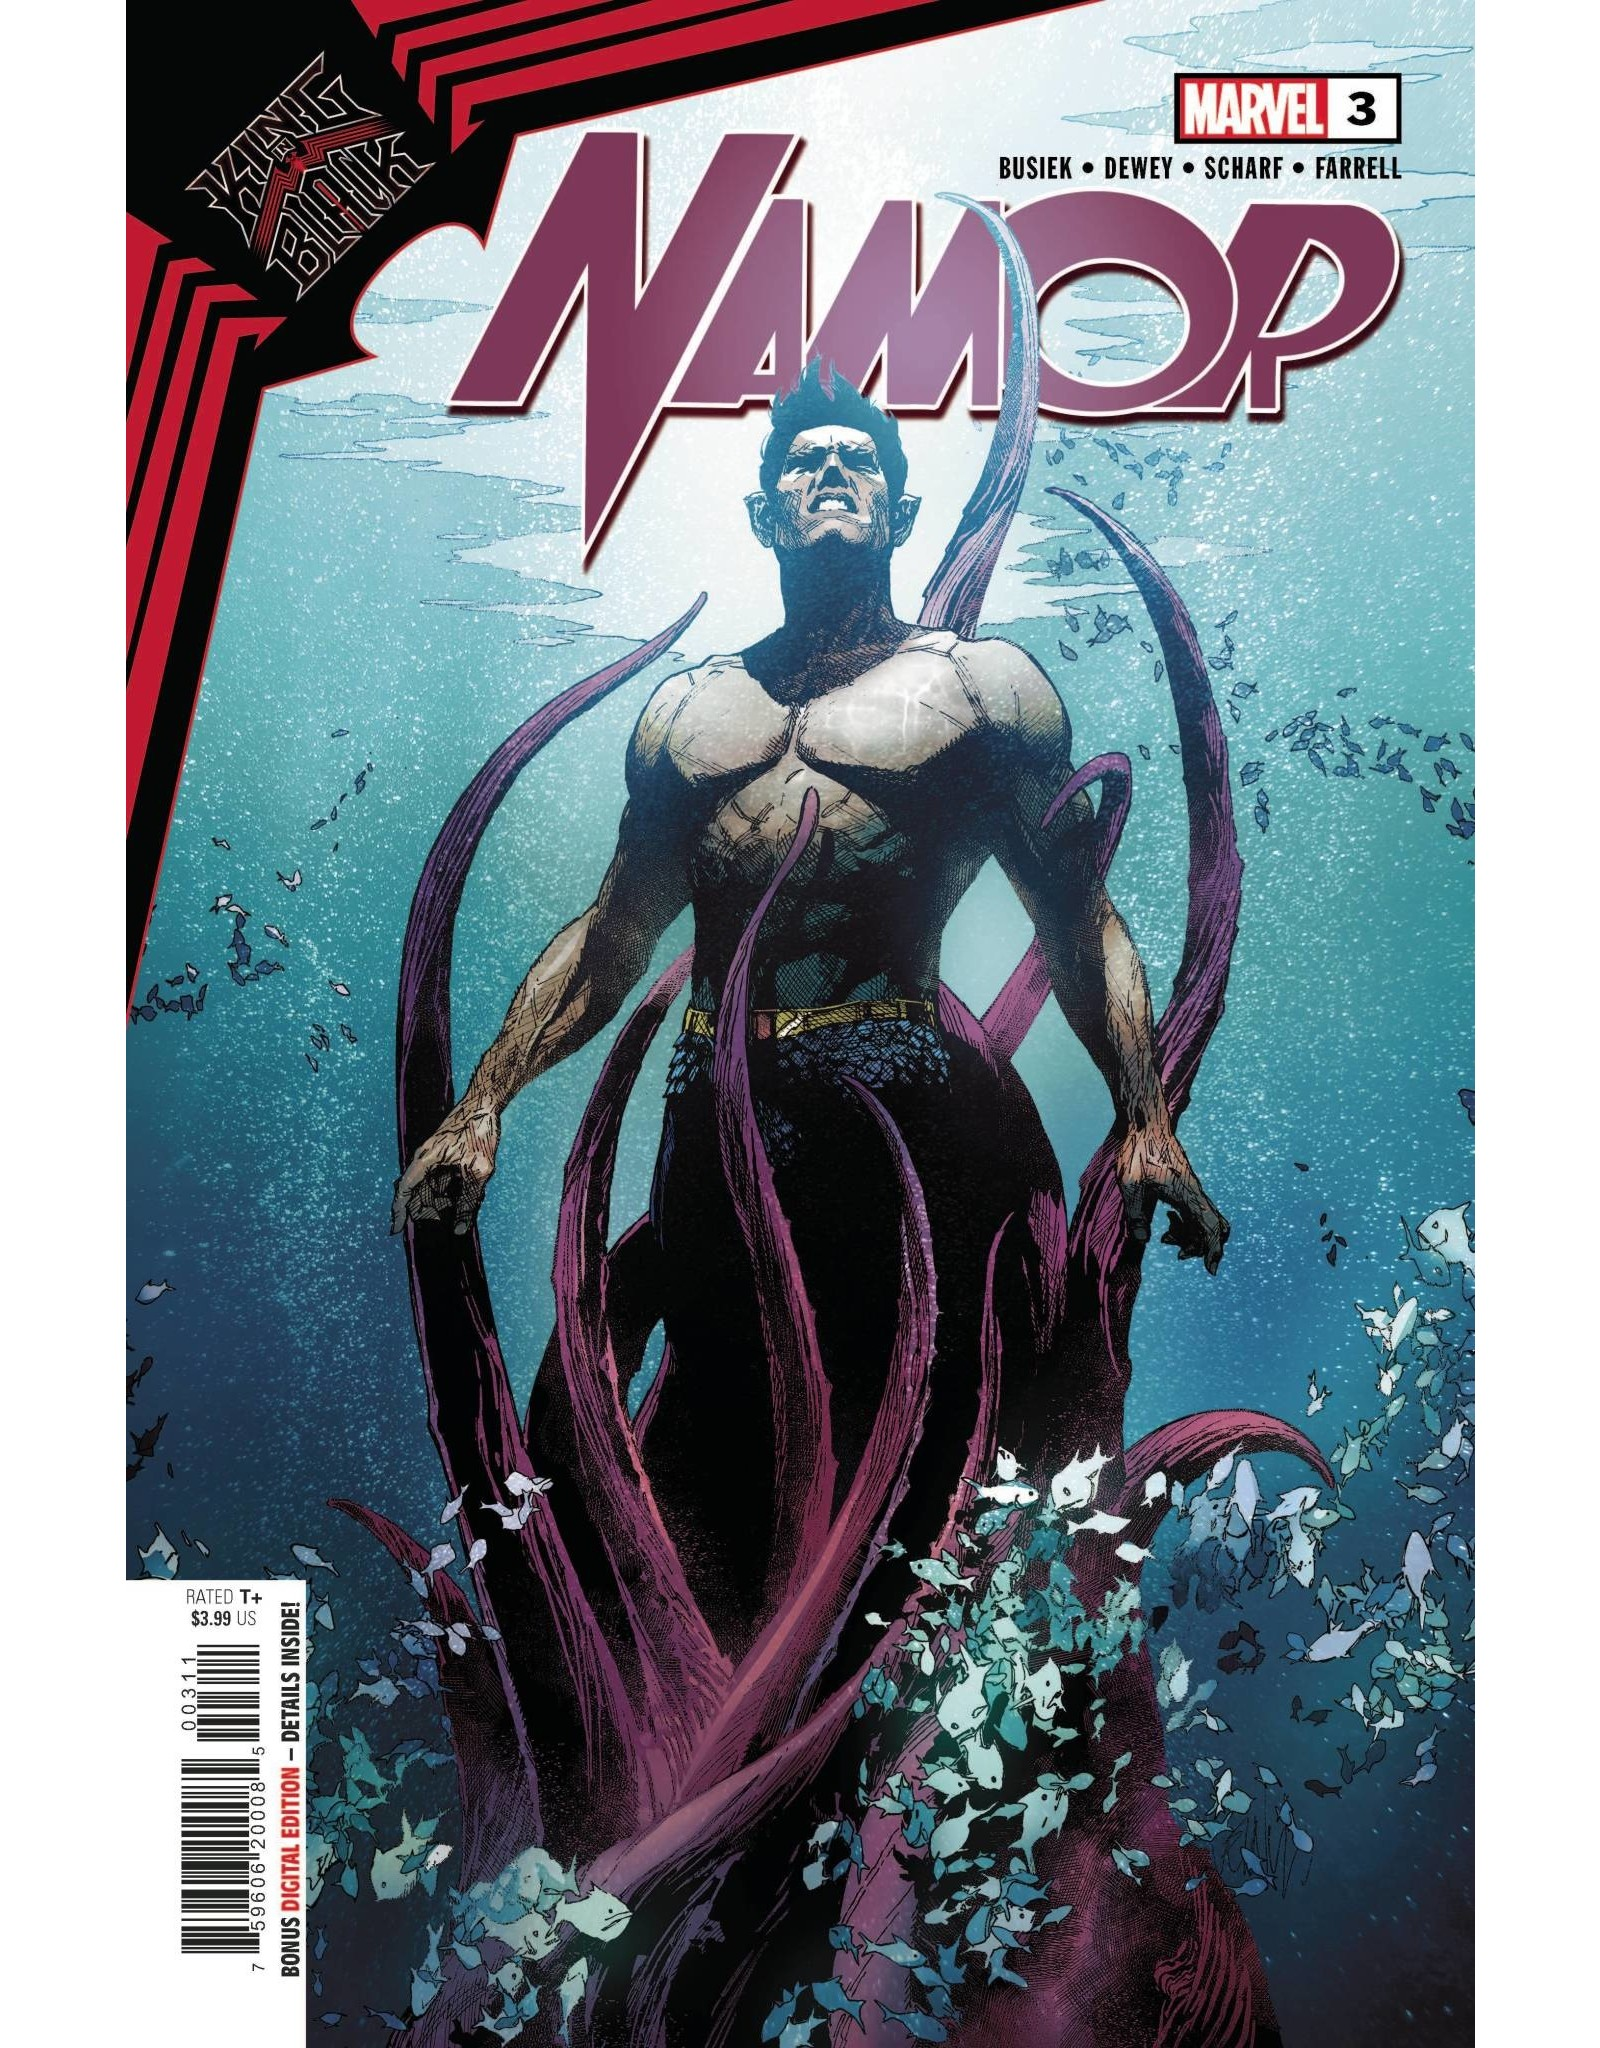 Marvel Comics KING IN BLACK NAMOR #3 (OF 3)